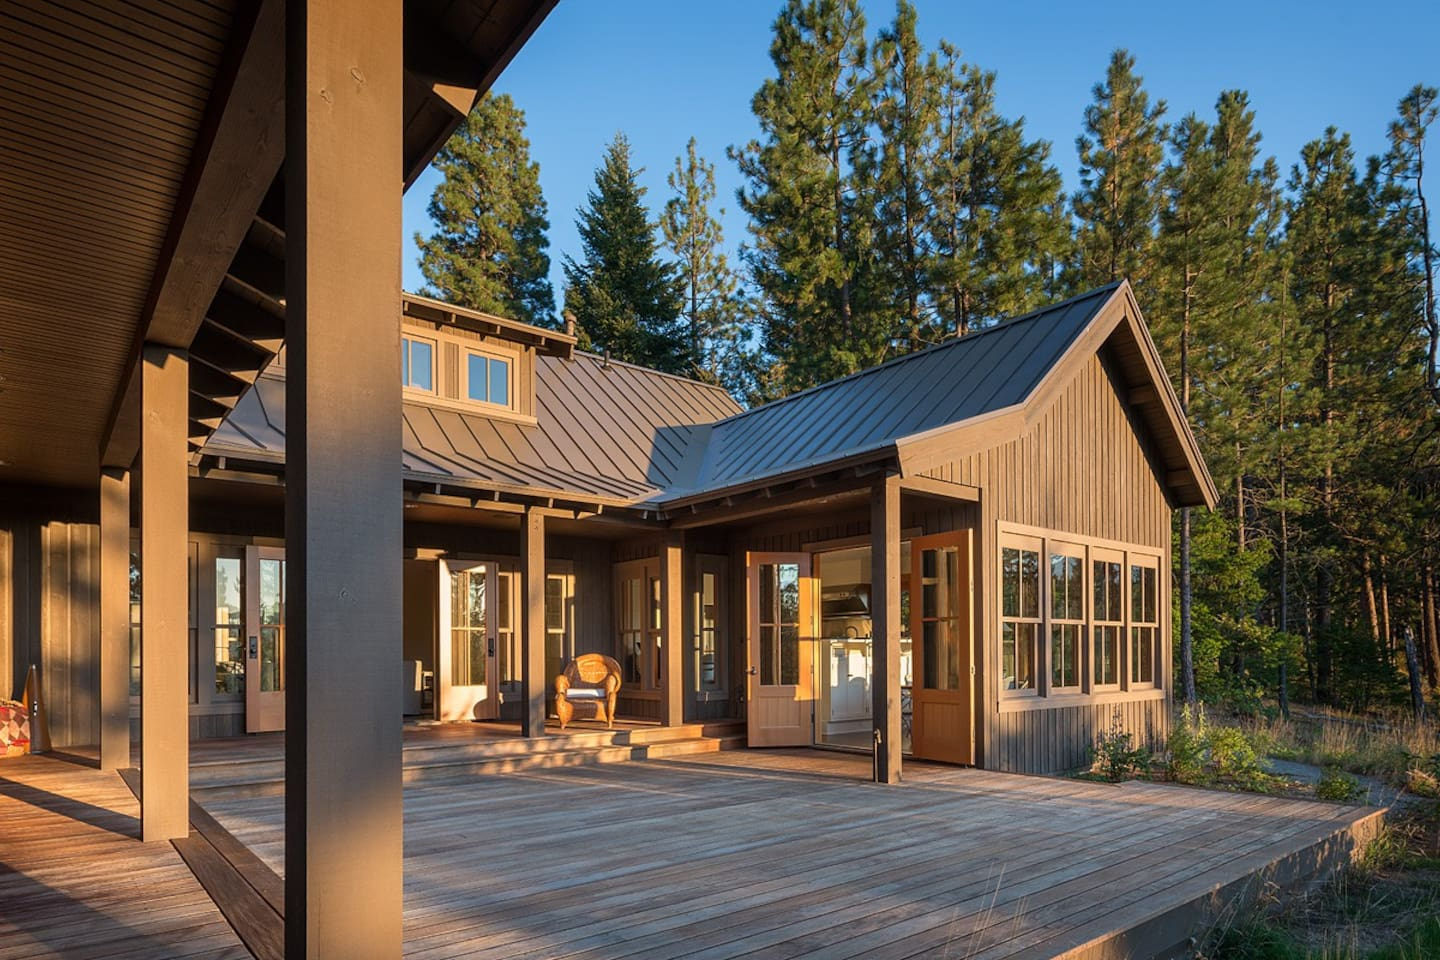 Sunny, west facing property overlooks the Cle Elum River Valley.